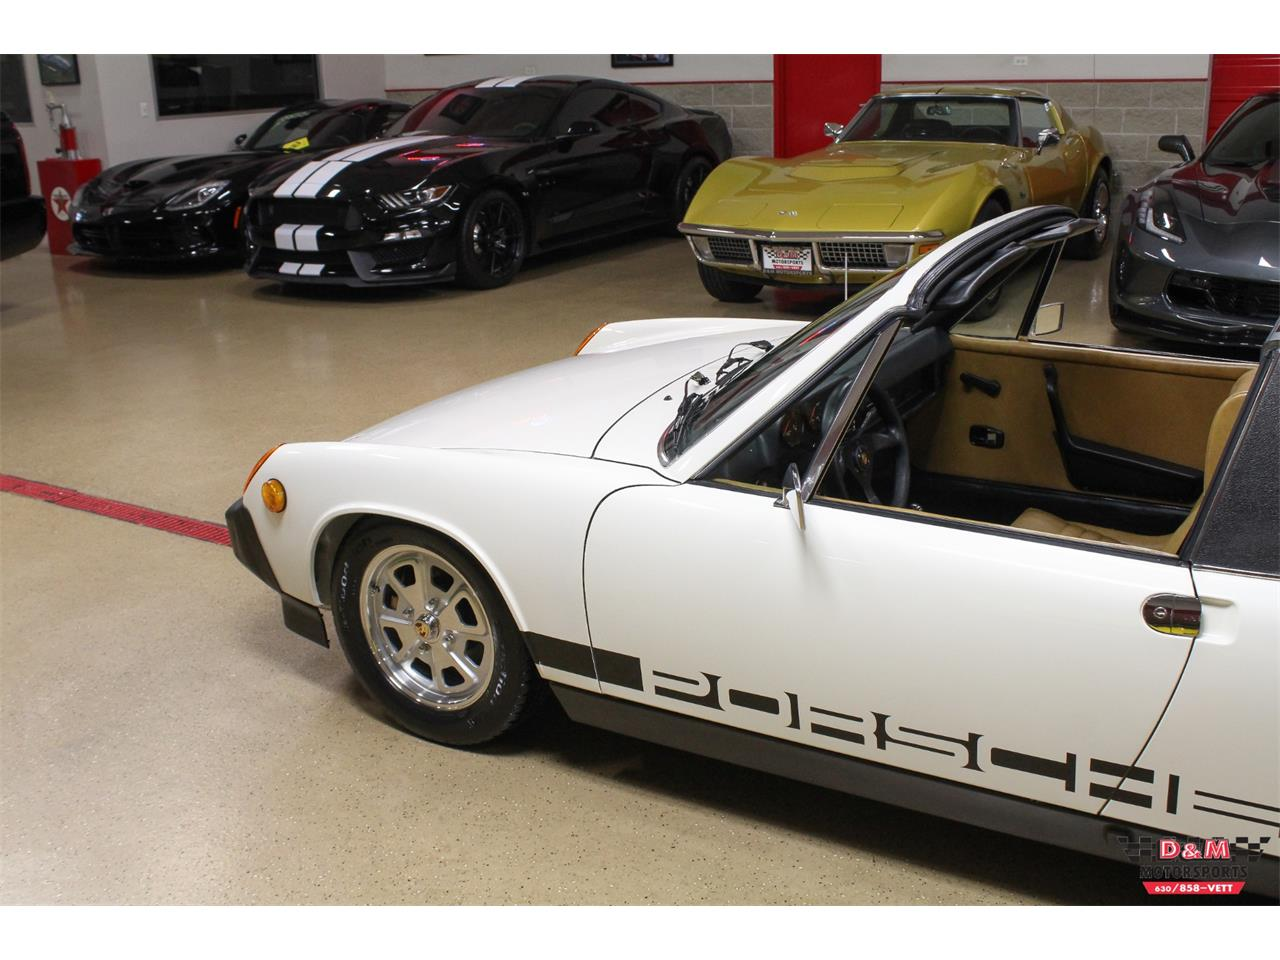 Large Picture of '76 Porsche 914 Offered by D & M Motorsports - P8QY